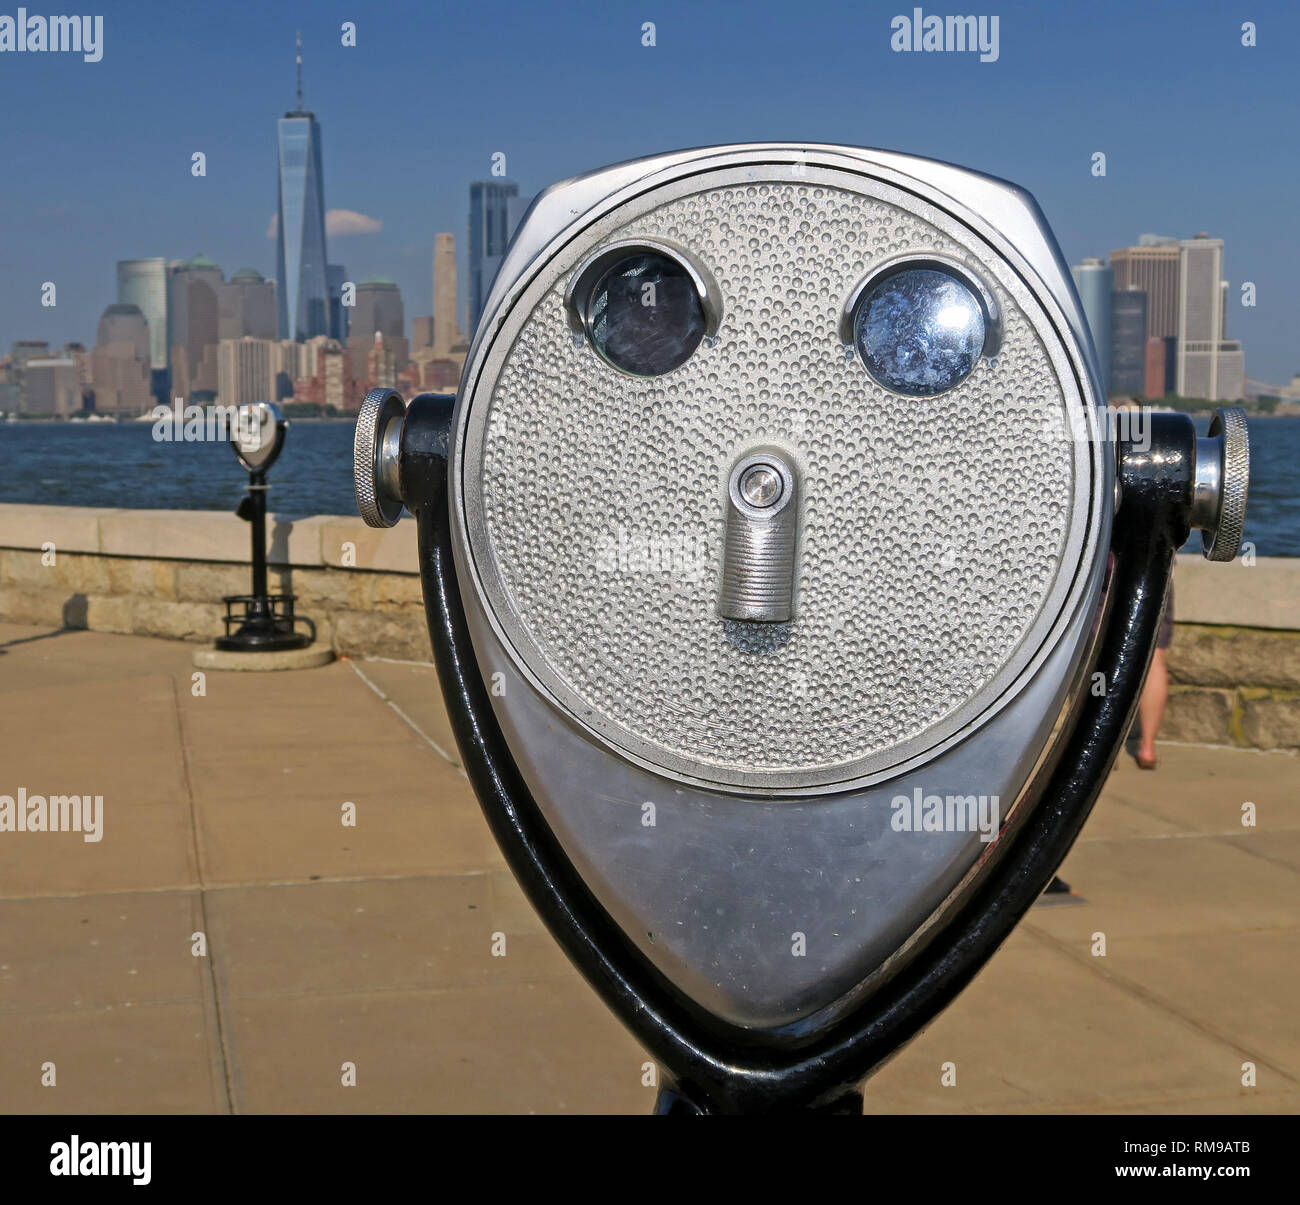 Silver / Steel PayToView coin operated binoculars, Ellis Island, New York Harbour, view of lower Manhattan, NYC, USA, United States of America Stock Photo